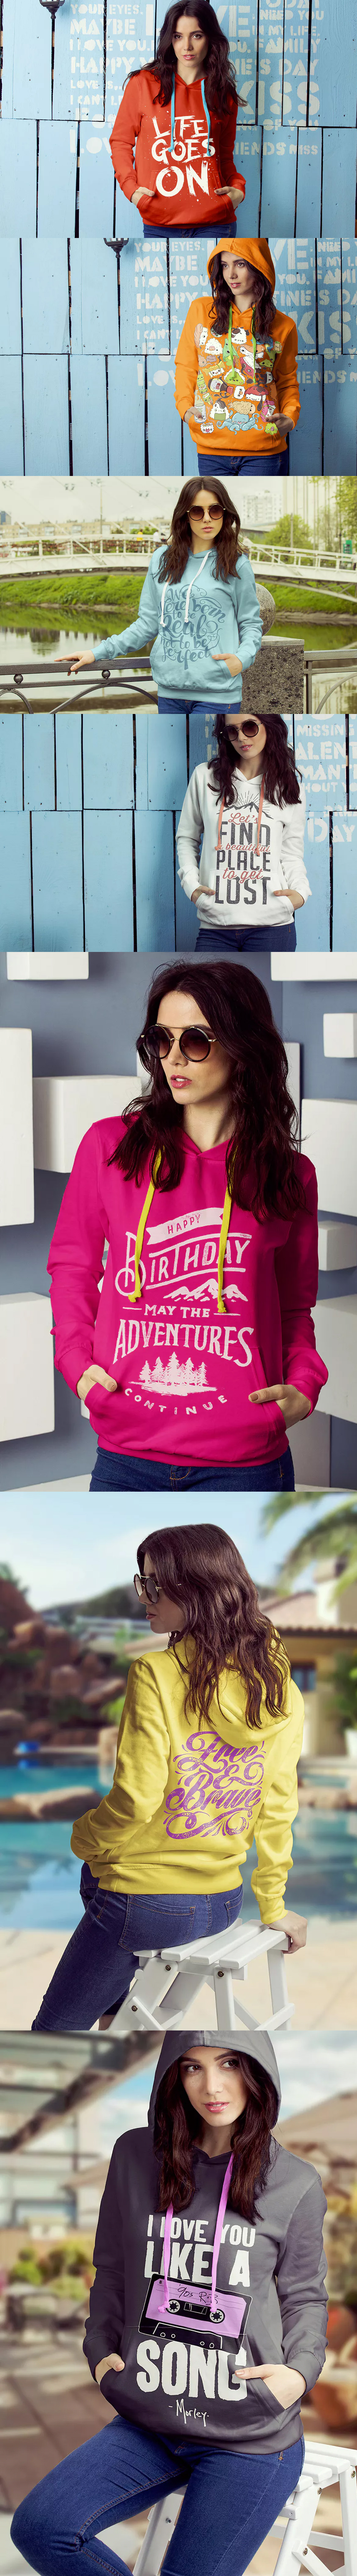 Download Female Hoodie Mockup By 2dsight On Envato Elements Hoodie Mockup Hoodies Womens Hoodies